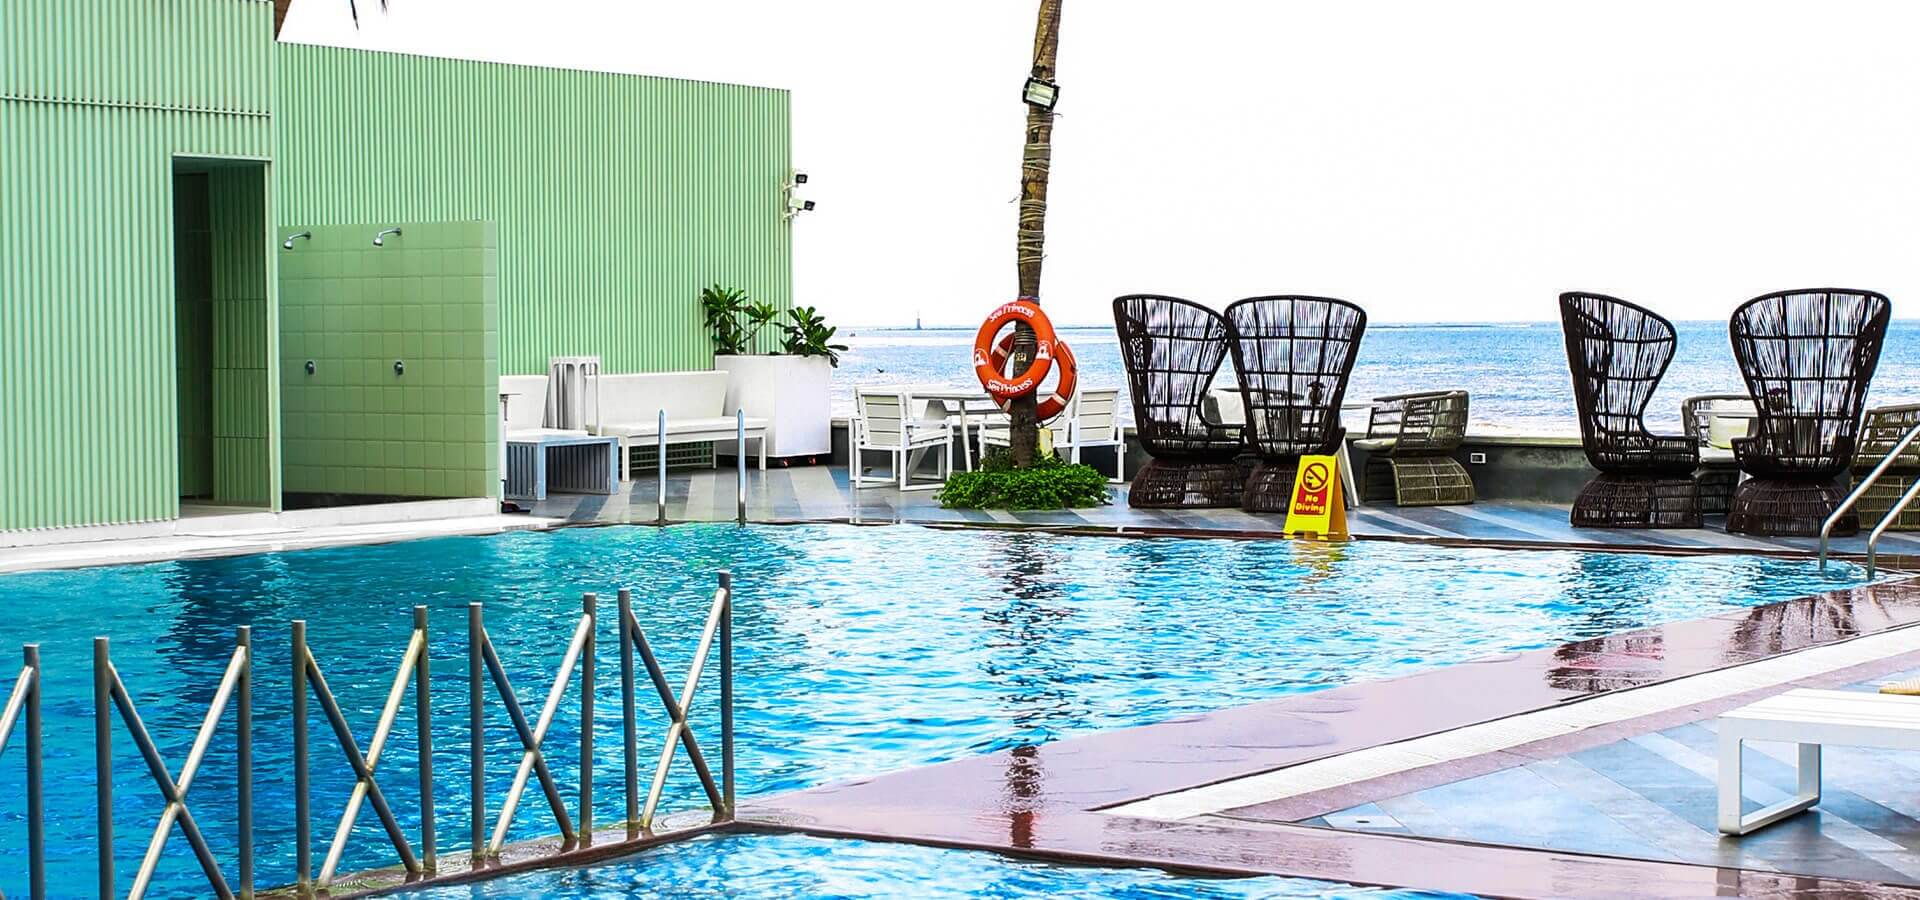 hotels with swimming pool in Juhu, sunday brunch with swimming in Juhu, sunday brunch Juhu